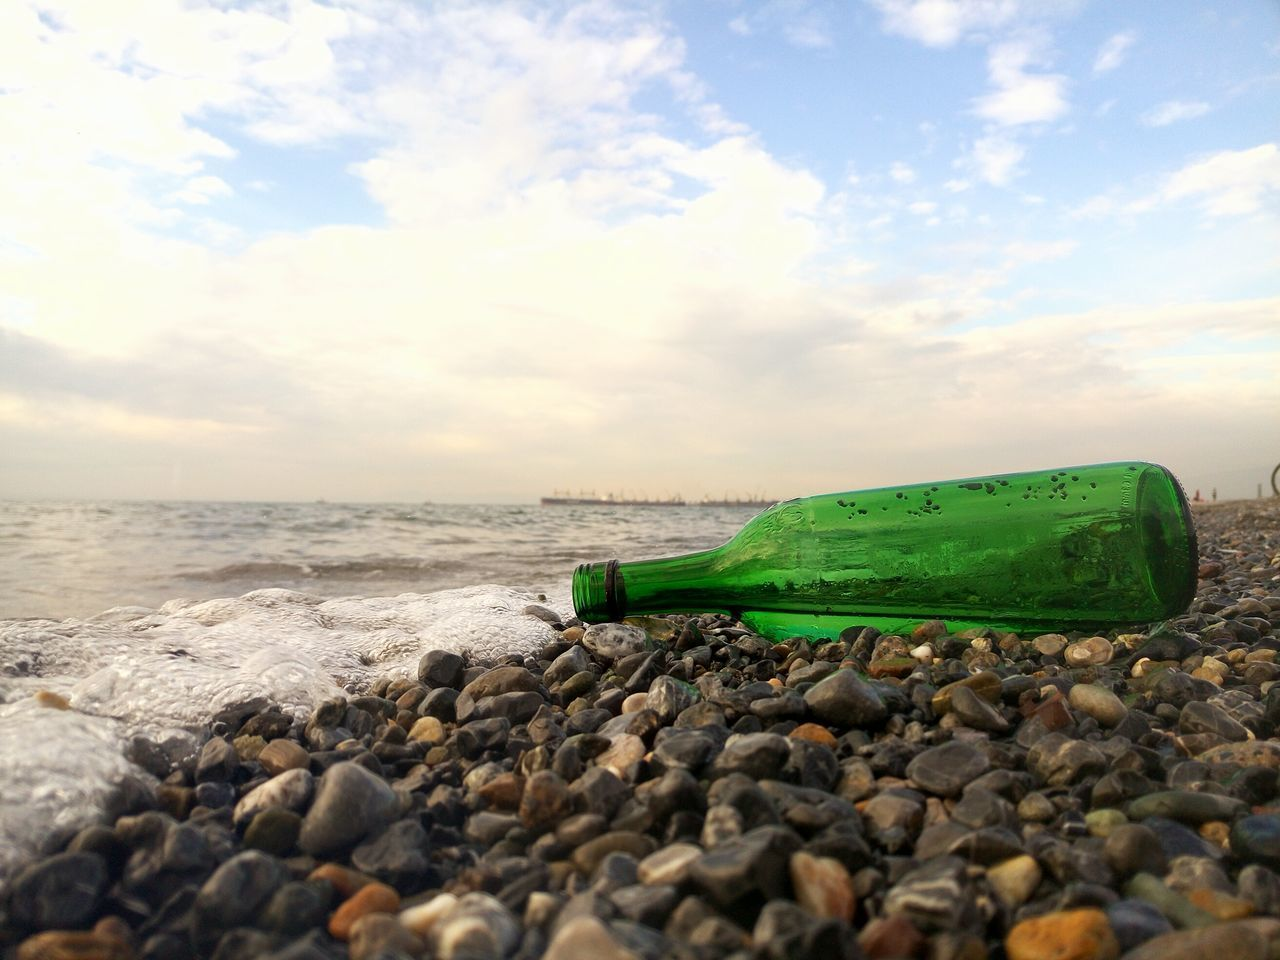 bottle, beach, sea, plastic, water, nature, tranquility, sky, no people, outdoors, sand, day, beauty in nature